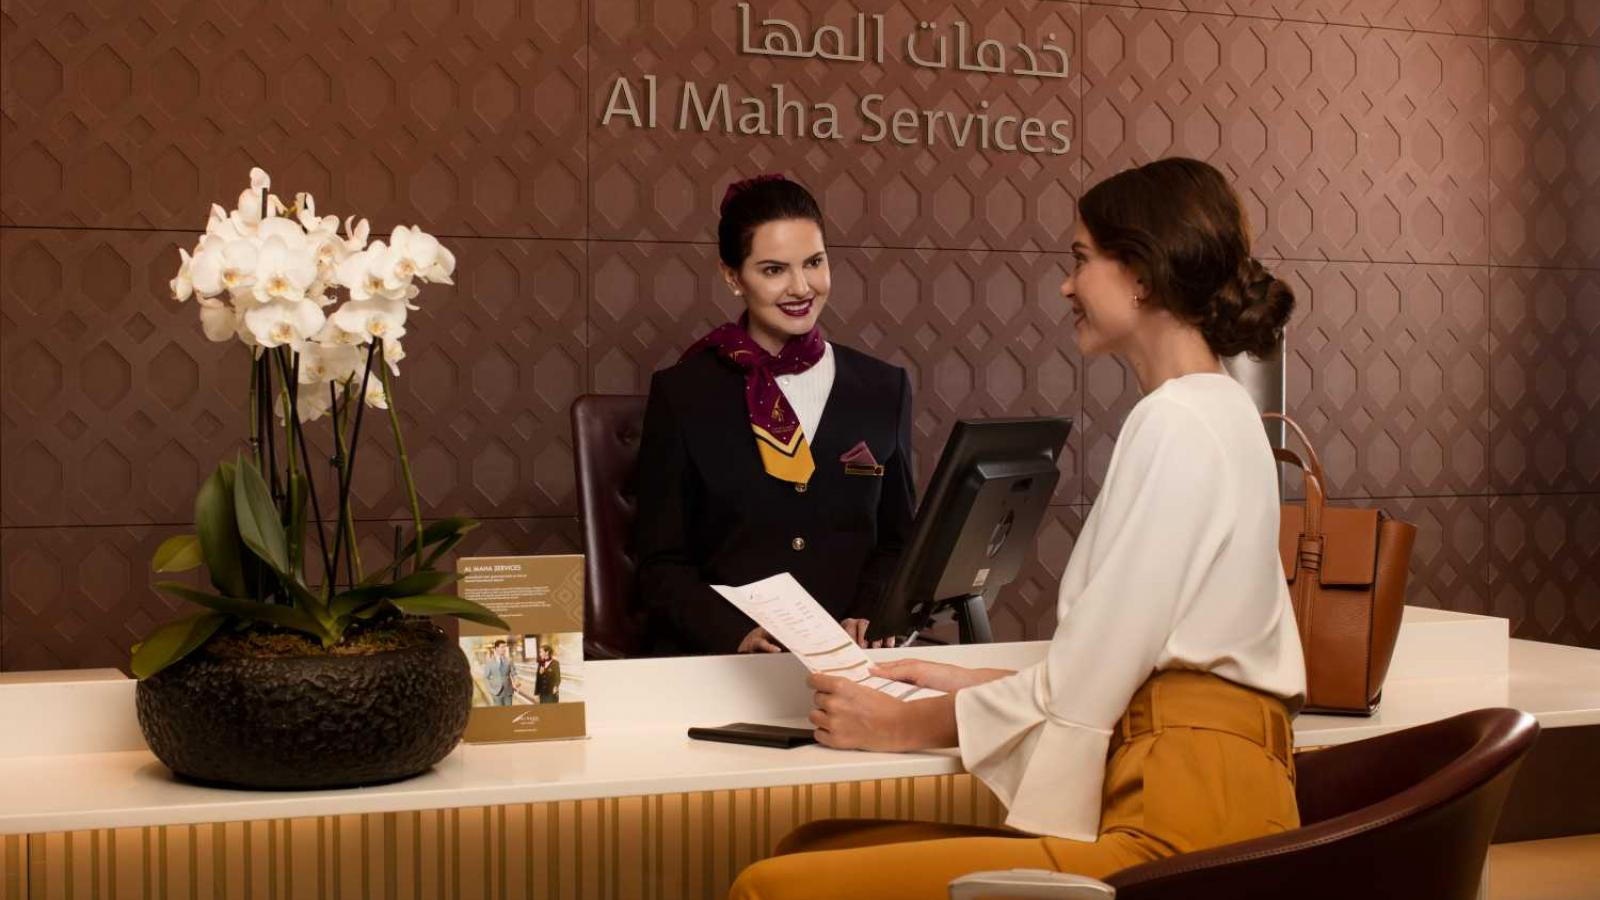 Enjoy a seamless airport experience with Al Maha Services